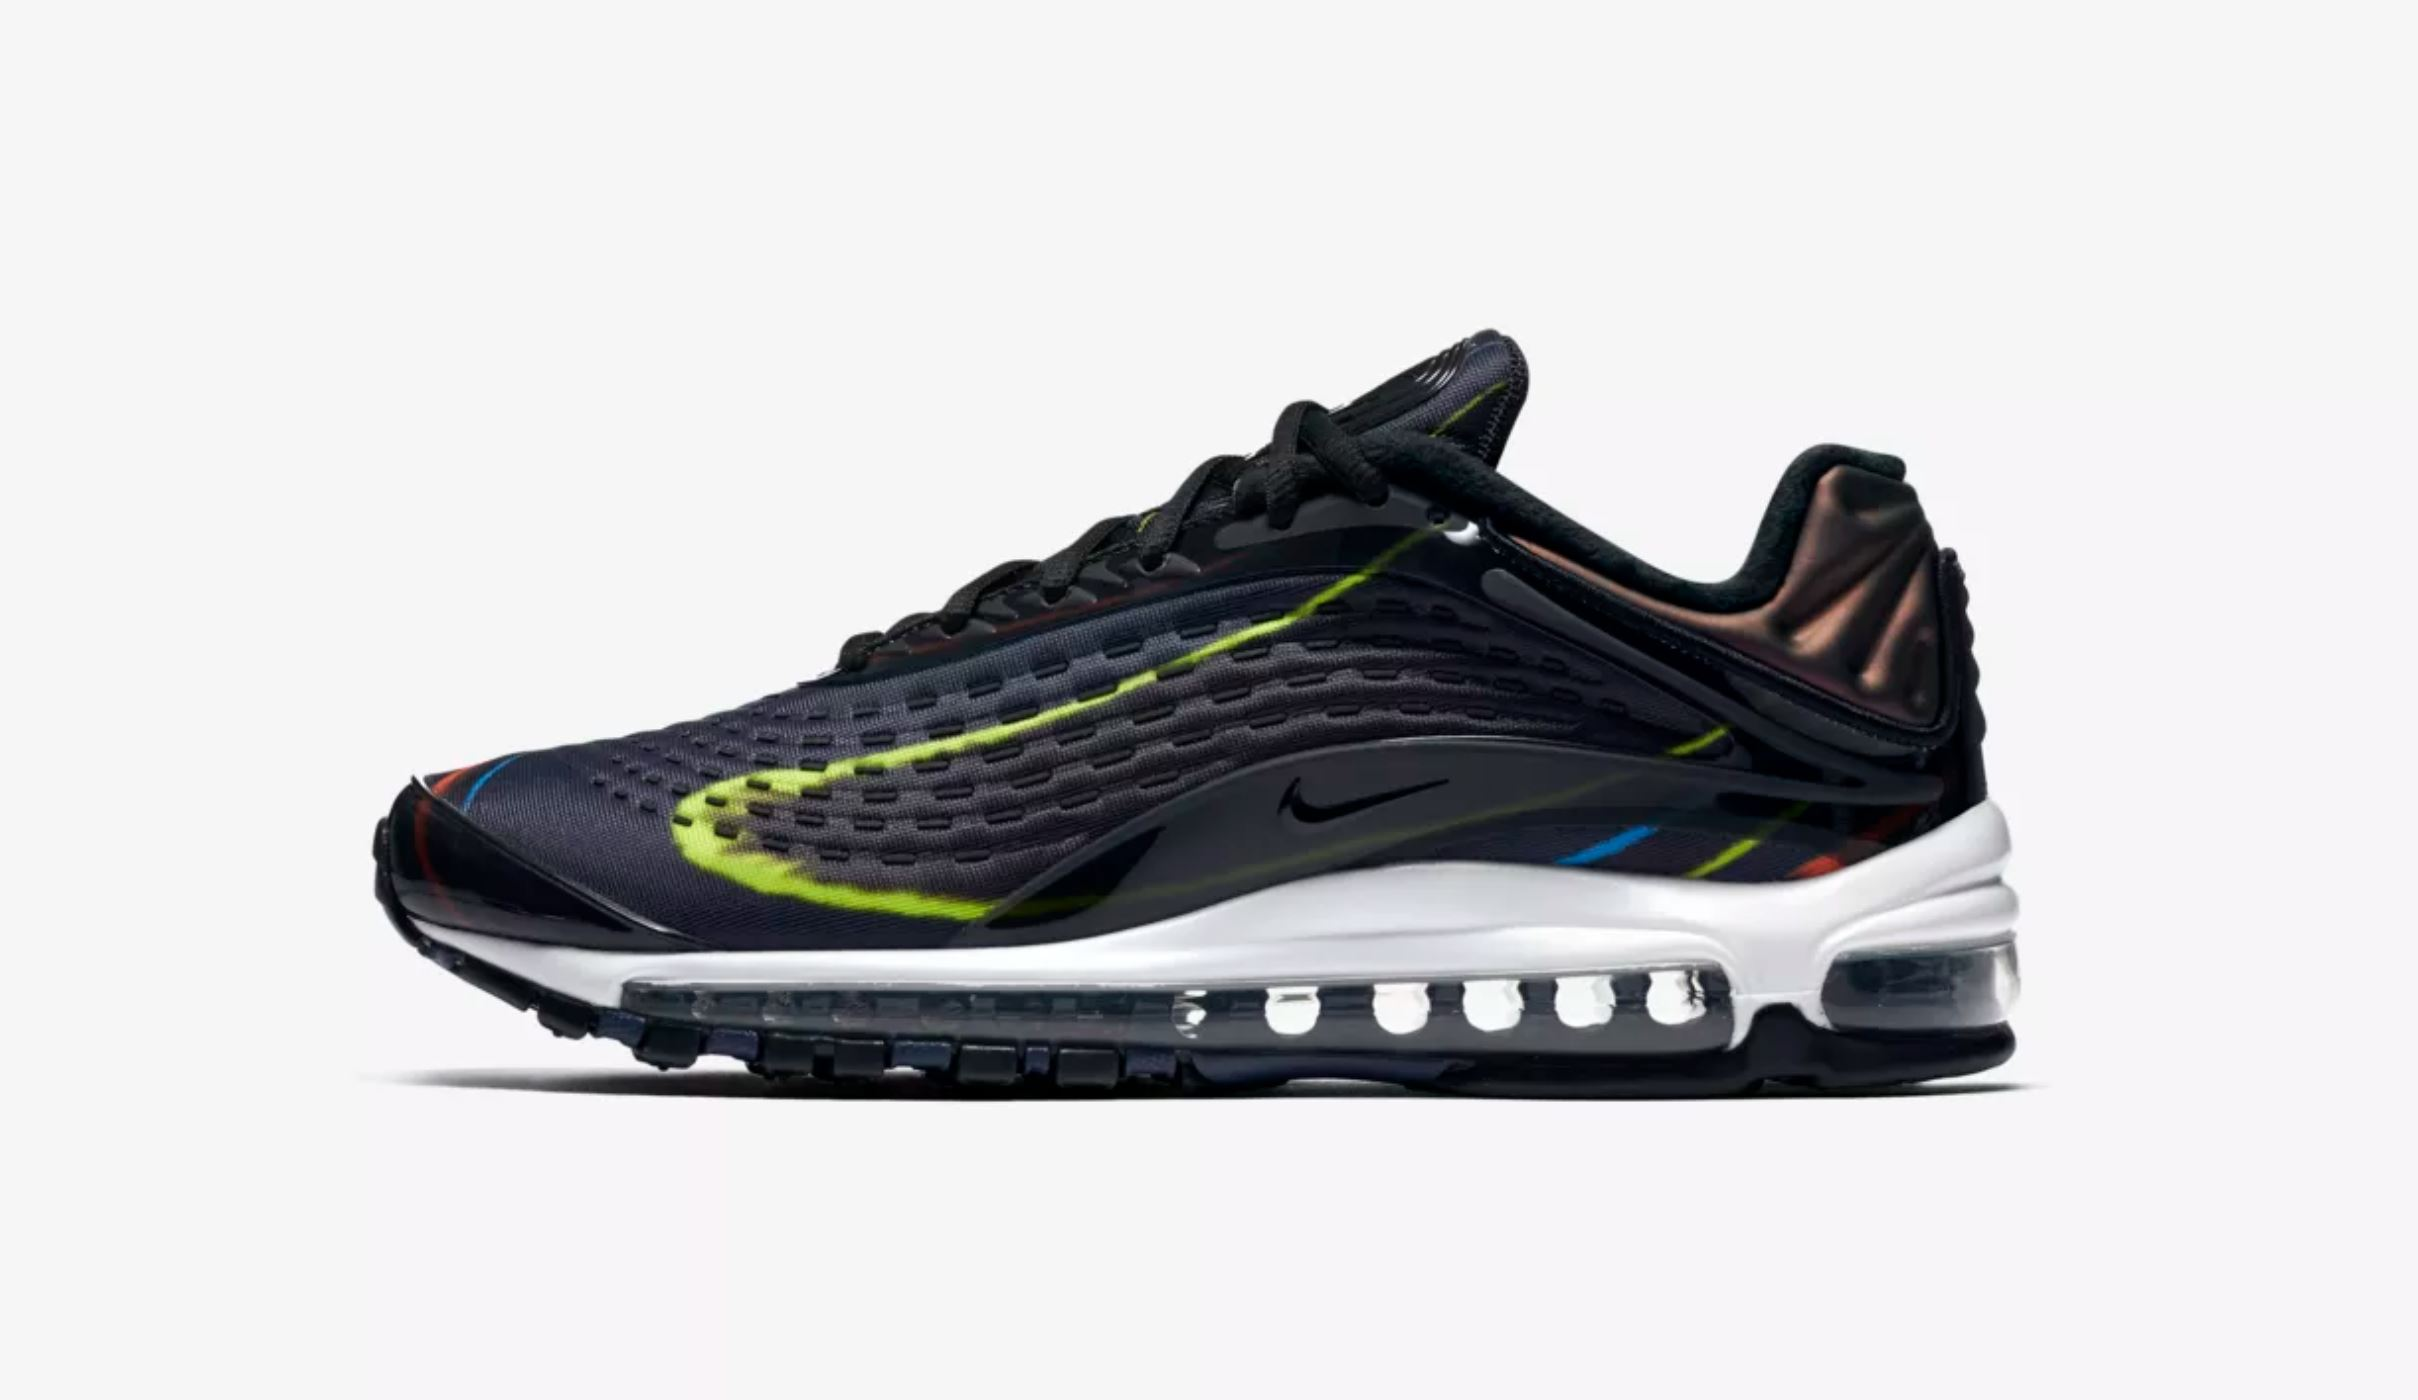 size 40 5327d 1e522 The Nike Air Max Deluxe 'Black Multicolor' Will Release for ...